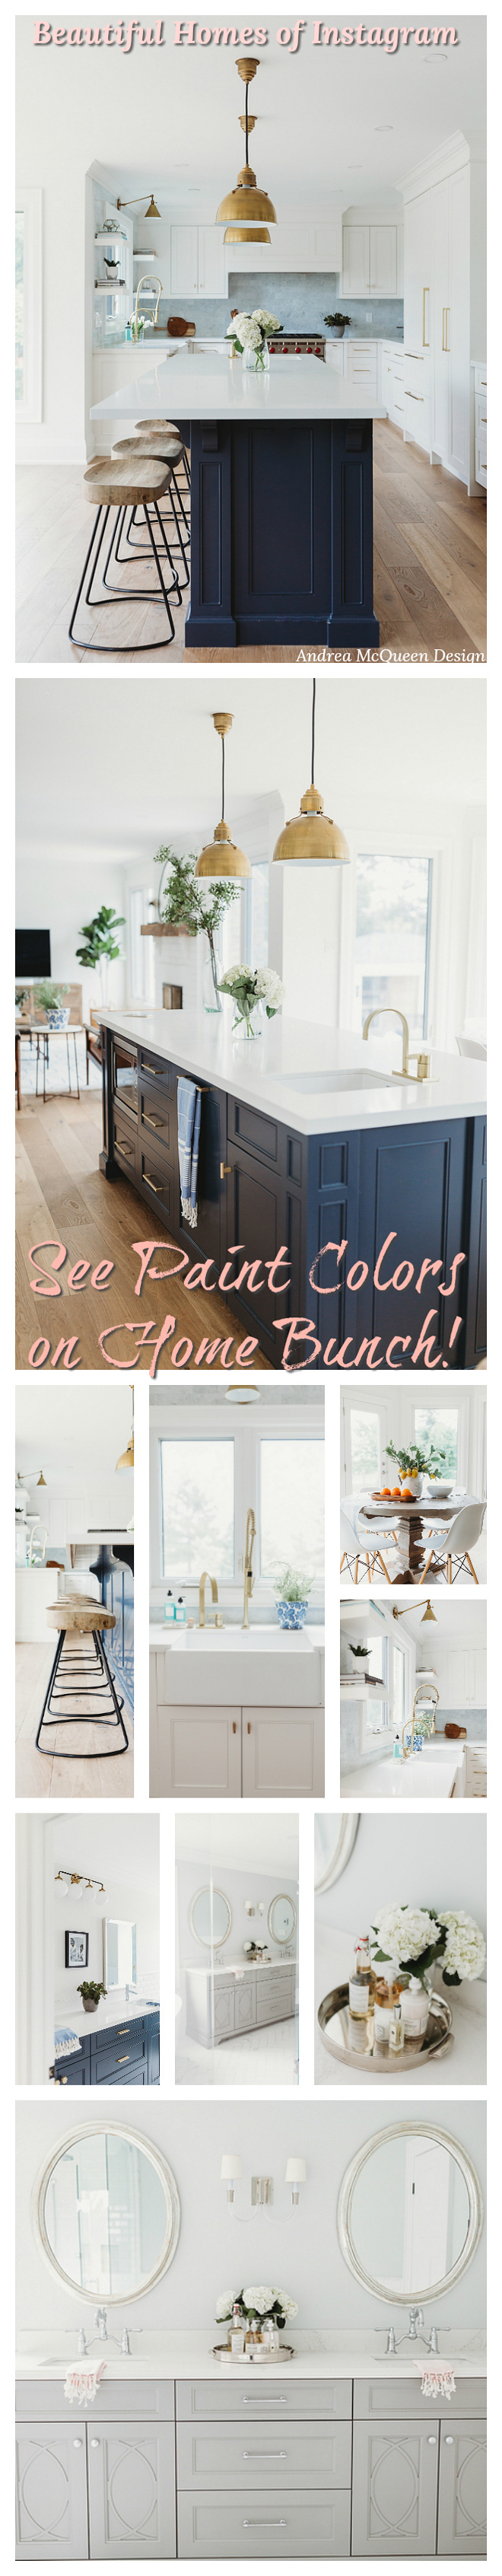 The Best Benjamin Moore Paint Colors Home Bunch Interior Design Ideas